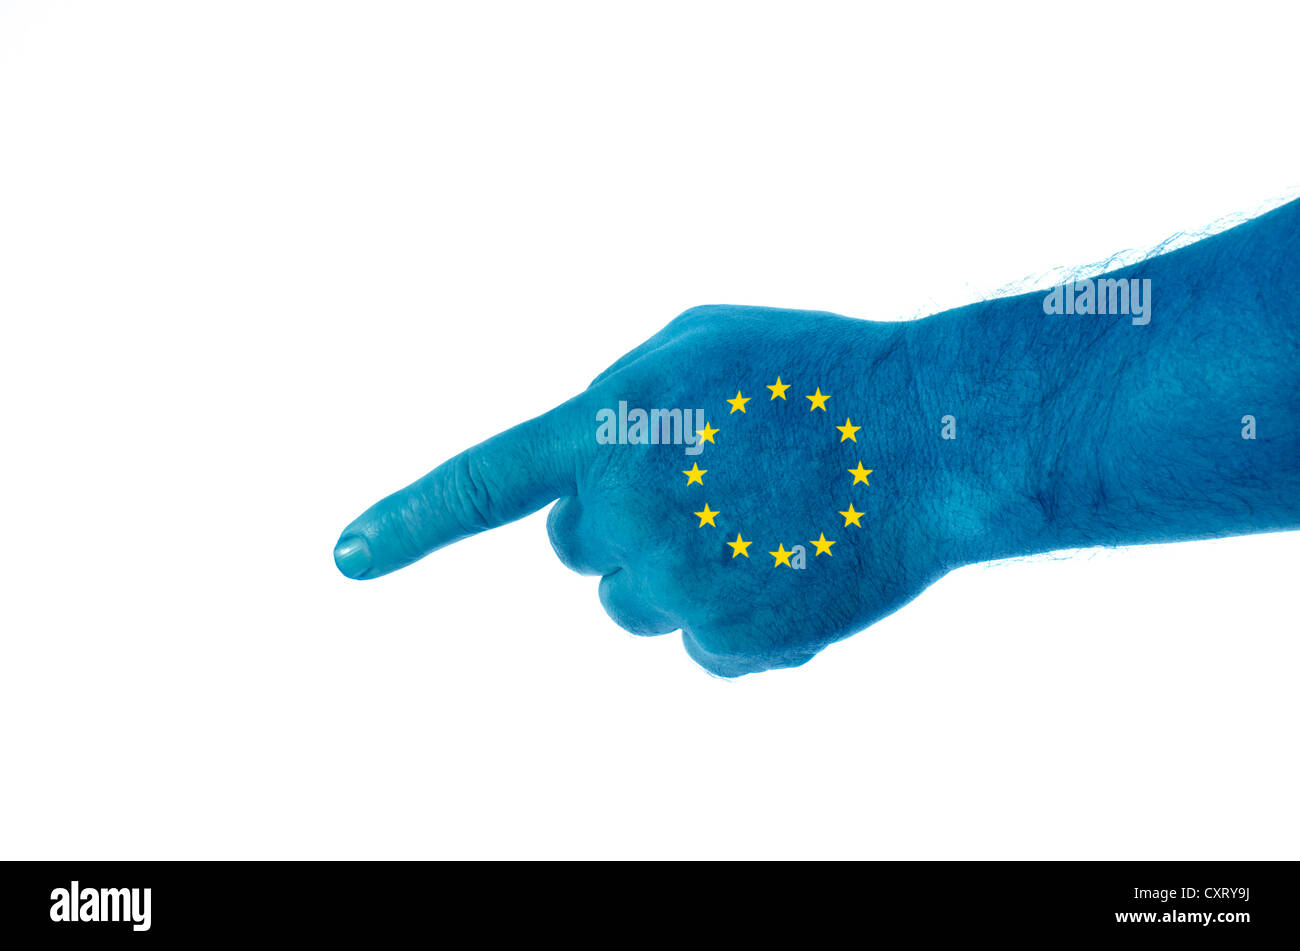 Hand with European stars pointing the finger, symbolic image Stock Photo